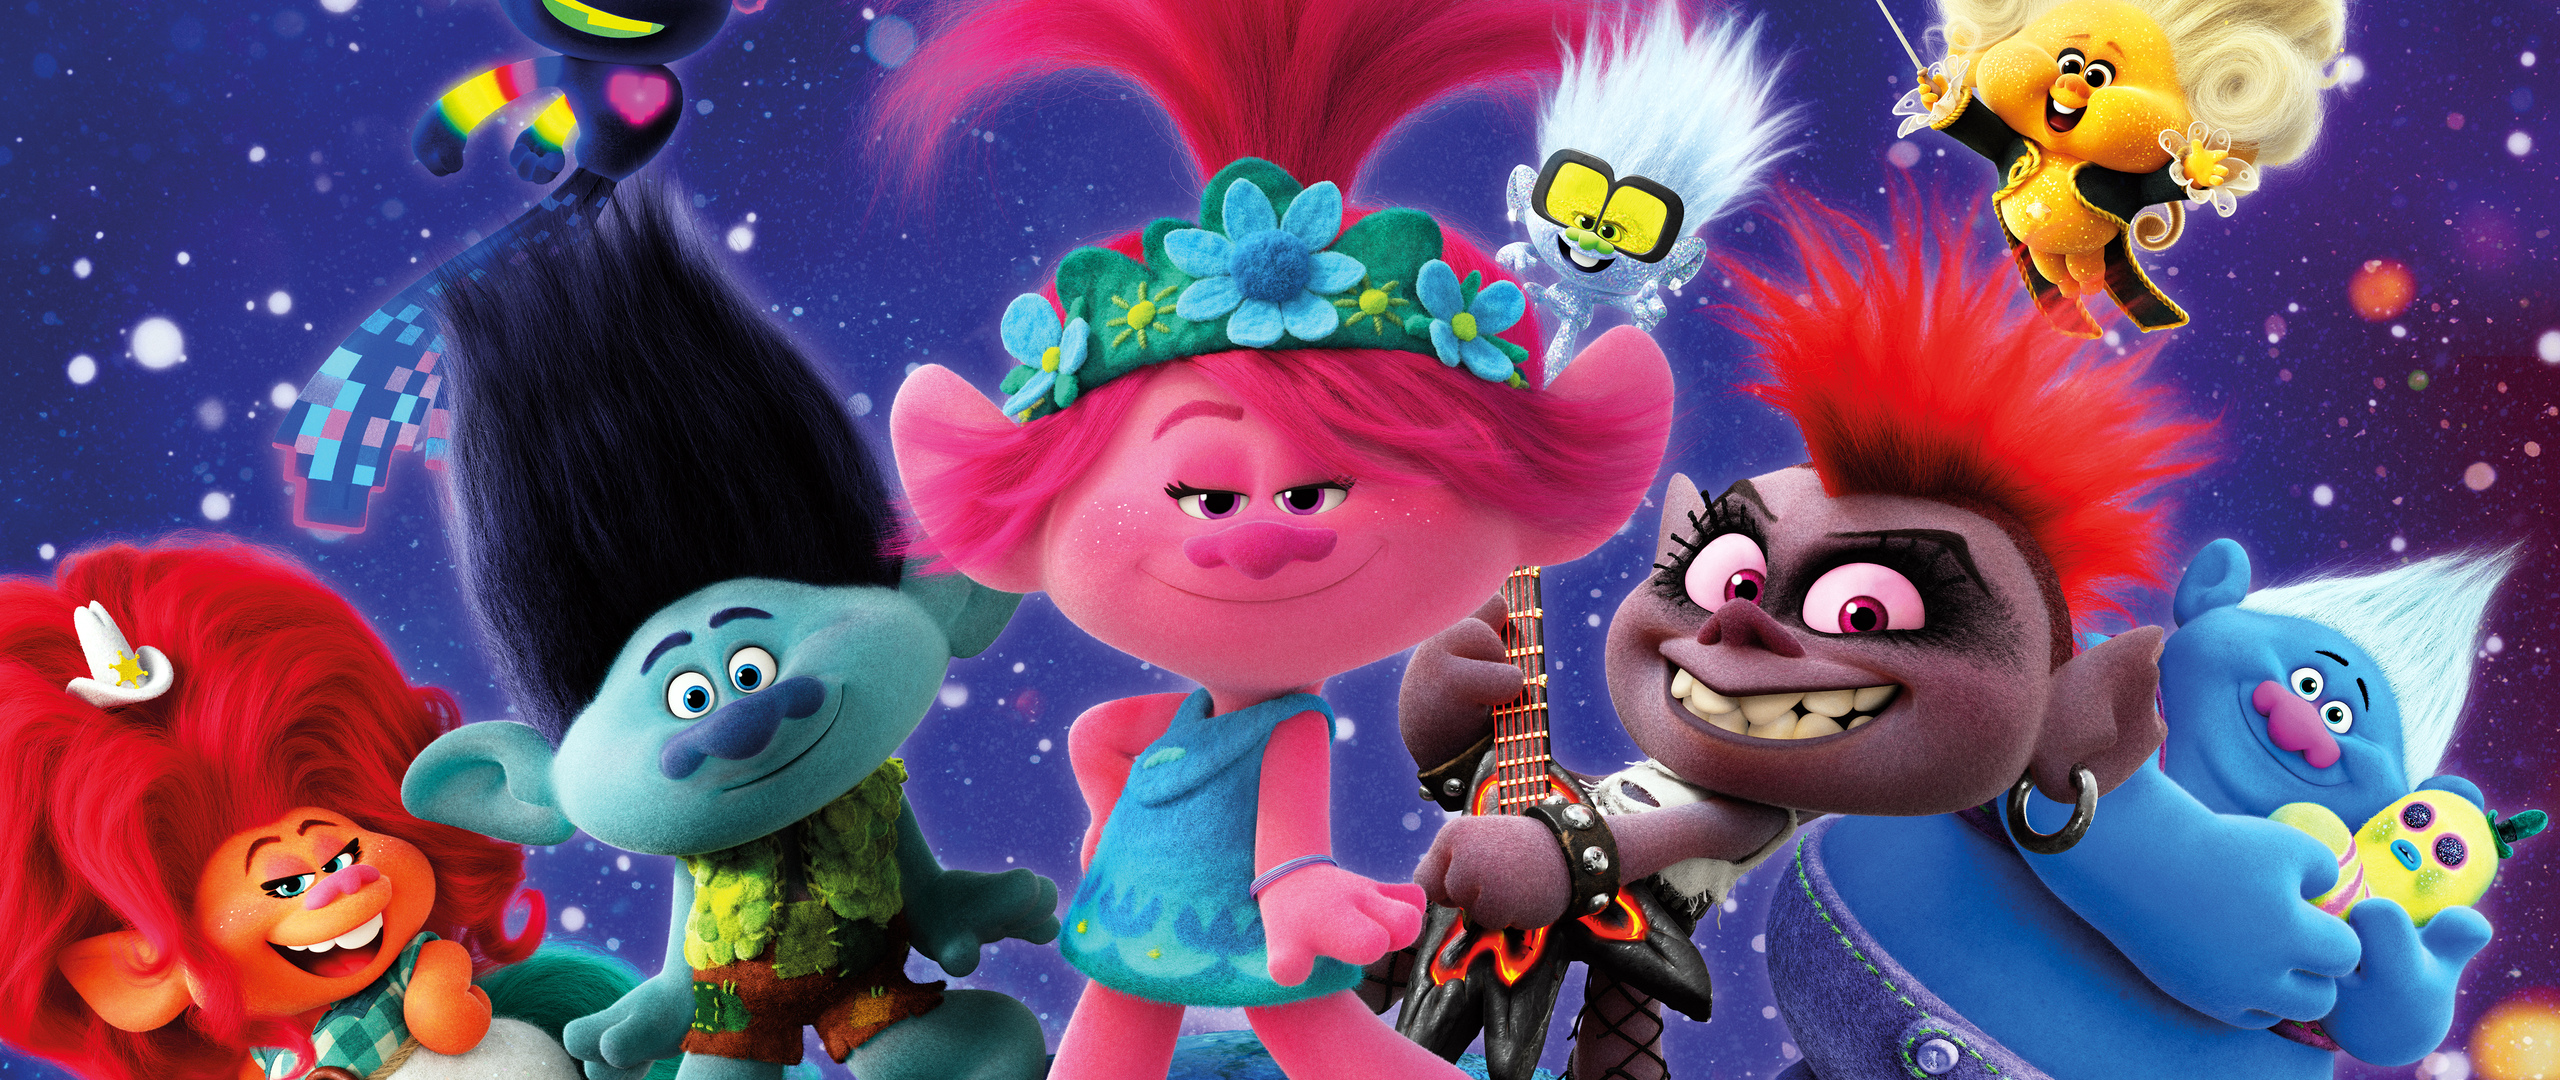 trolls-world-tour-2020-u3.jpg